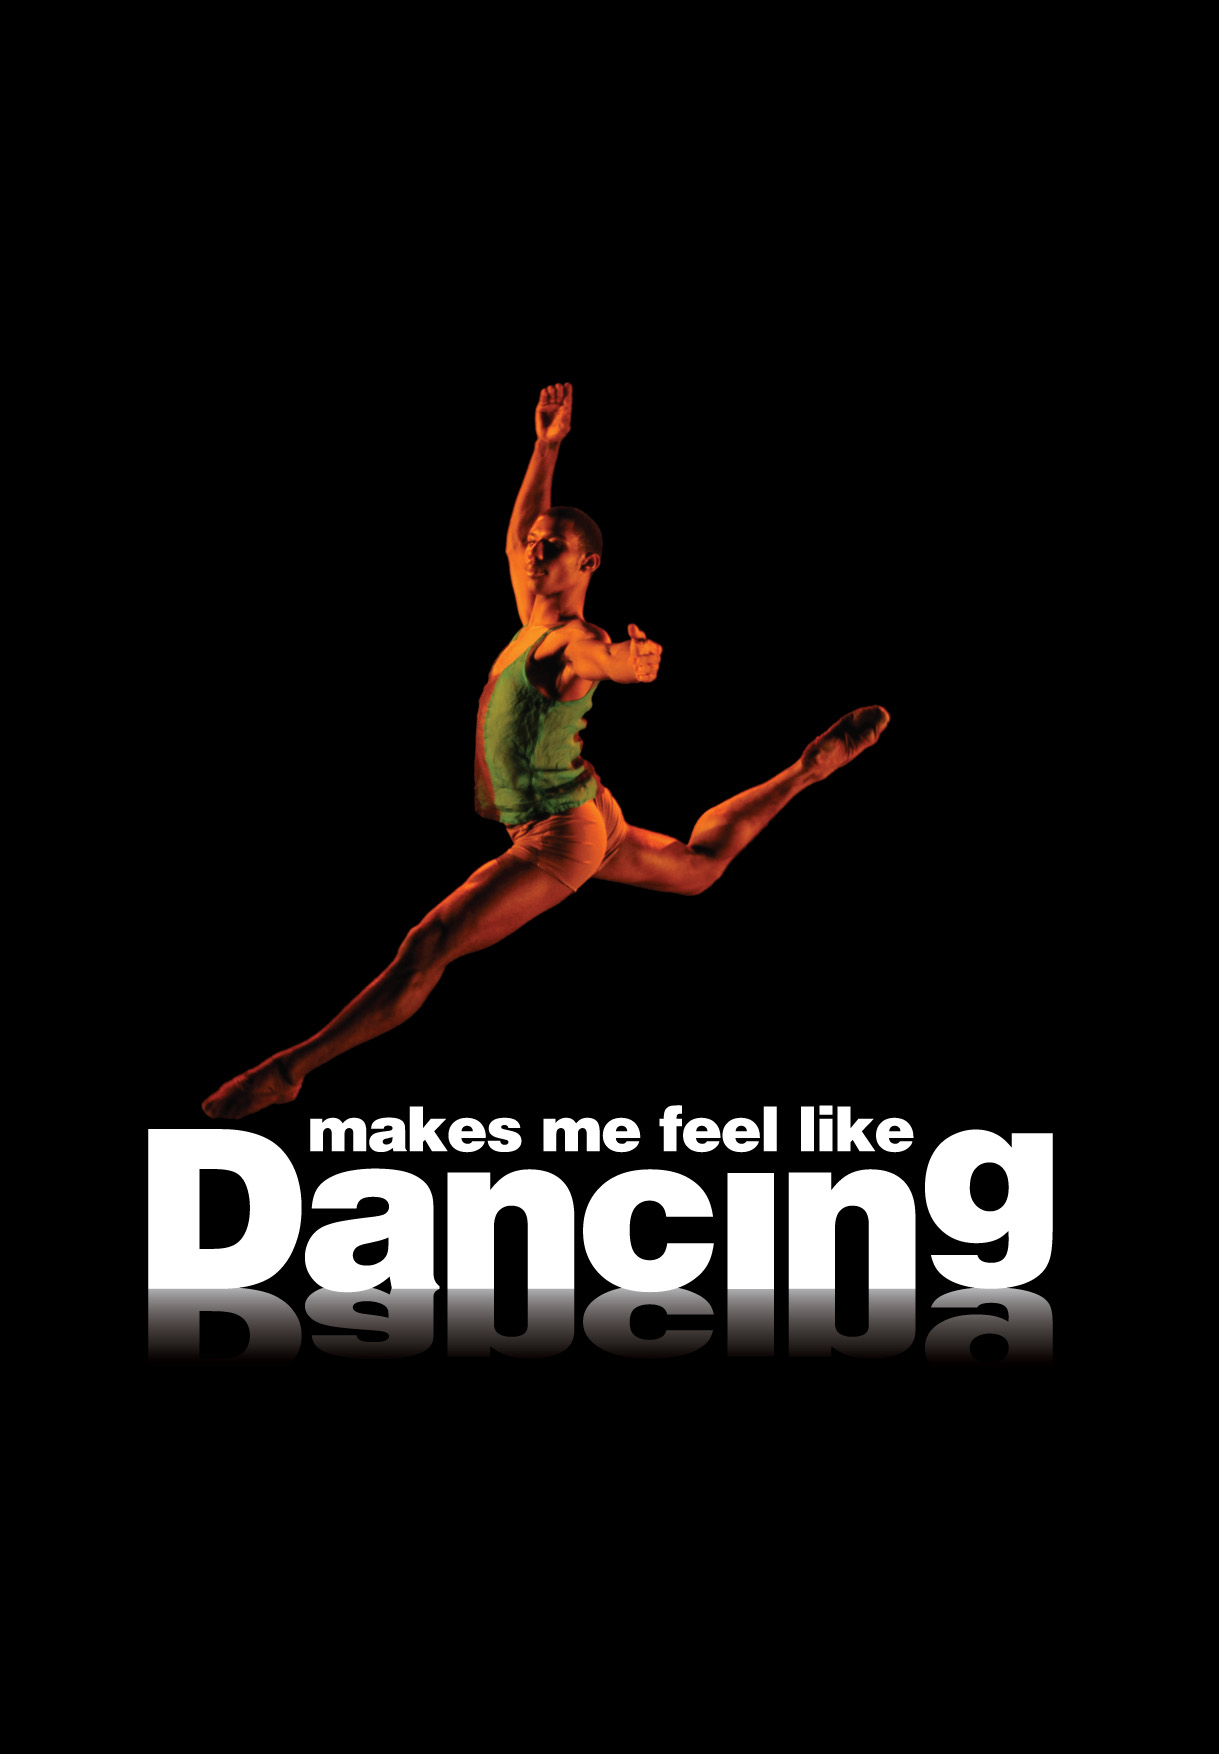 'Makes me Feel Like Dancing' logo